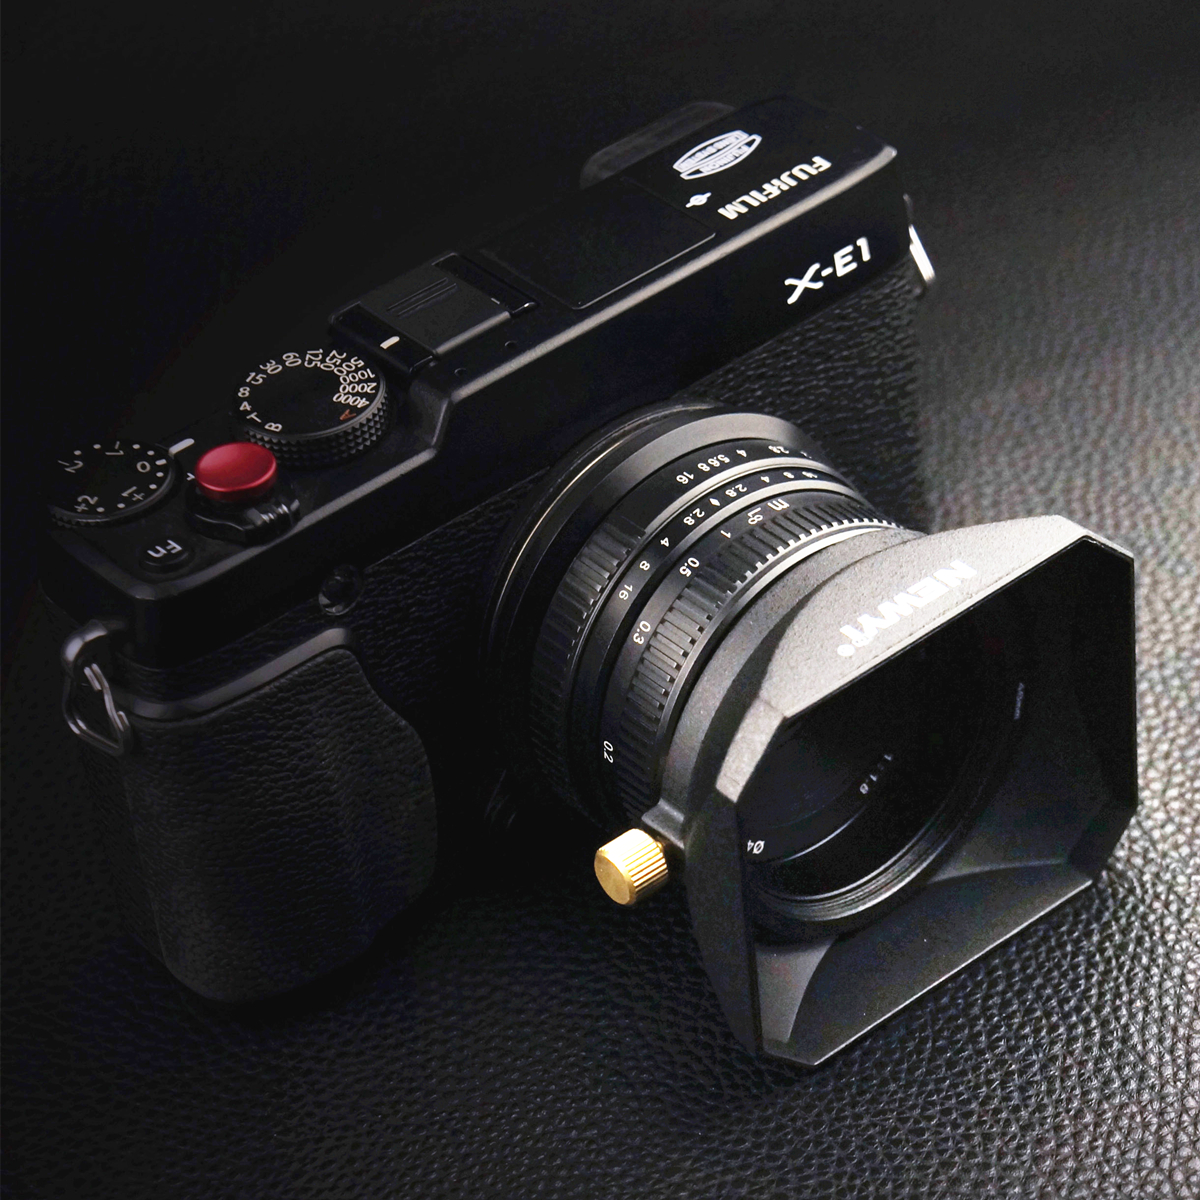 Square <font><b>Lens</b></font> <font><b>Hood</b></font> for Sony Fujifilm Olympus Mirrorless Camera <font><b>Lenses</b></font> DV Camcorders 37 39 40.5 43 46 49 52 55 <font><b>58</b></font> mm image